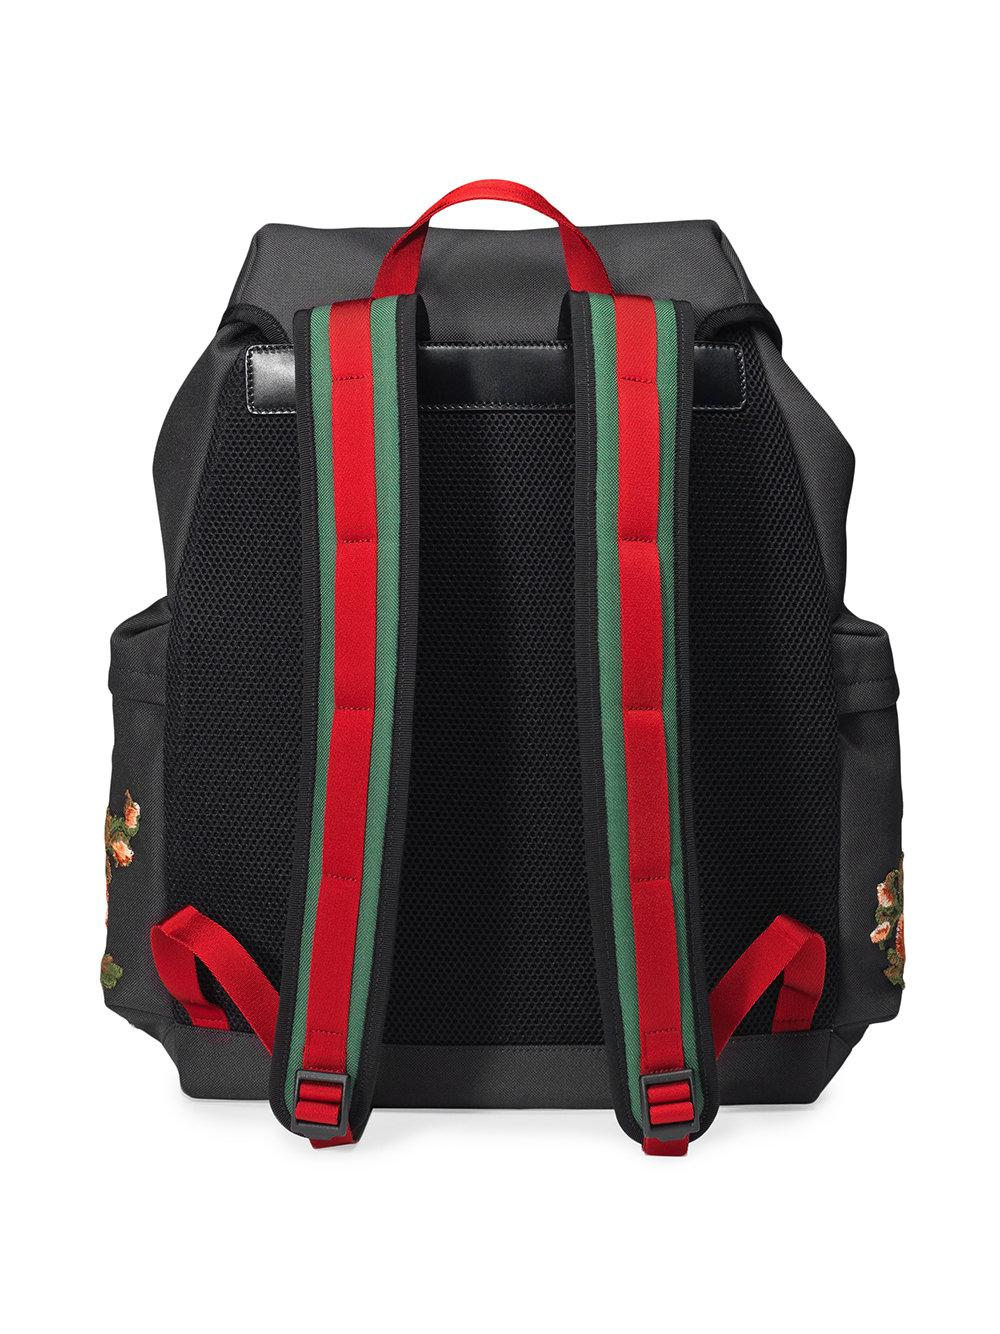 Gucci - Black Techpack With Embroidery for Men - Lyst. View fullscreen fa125c3662e7d